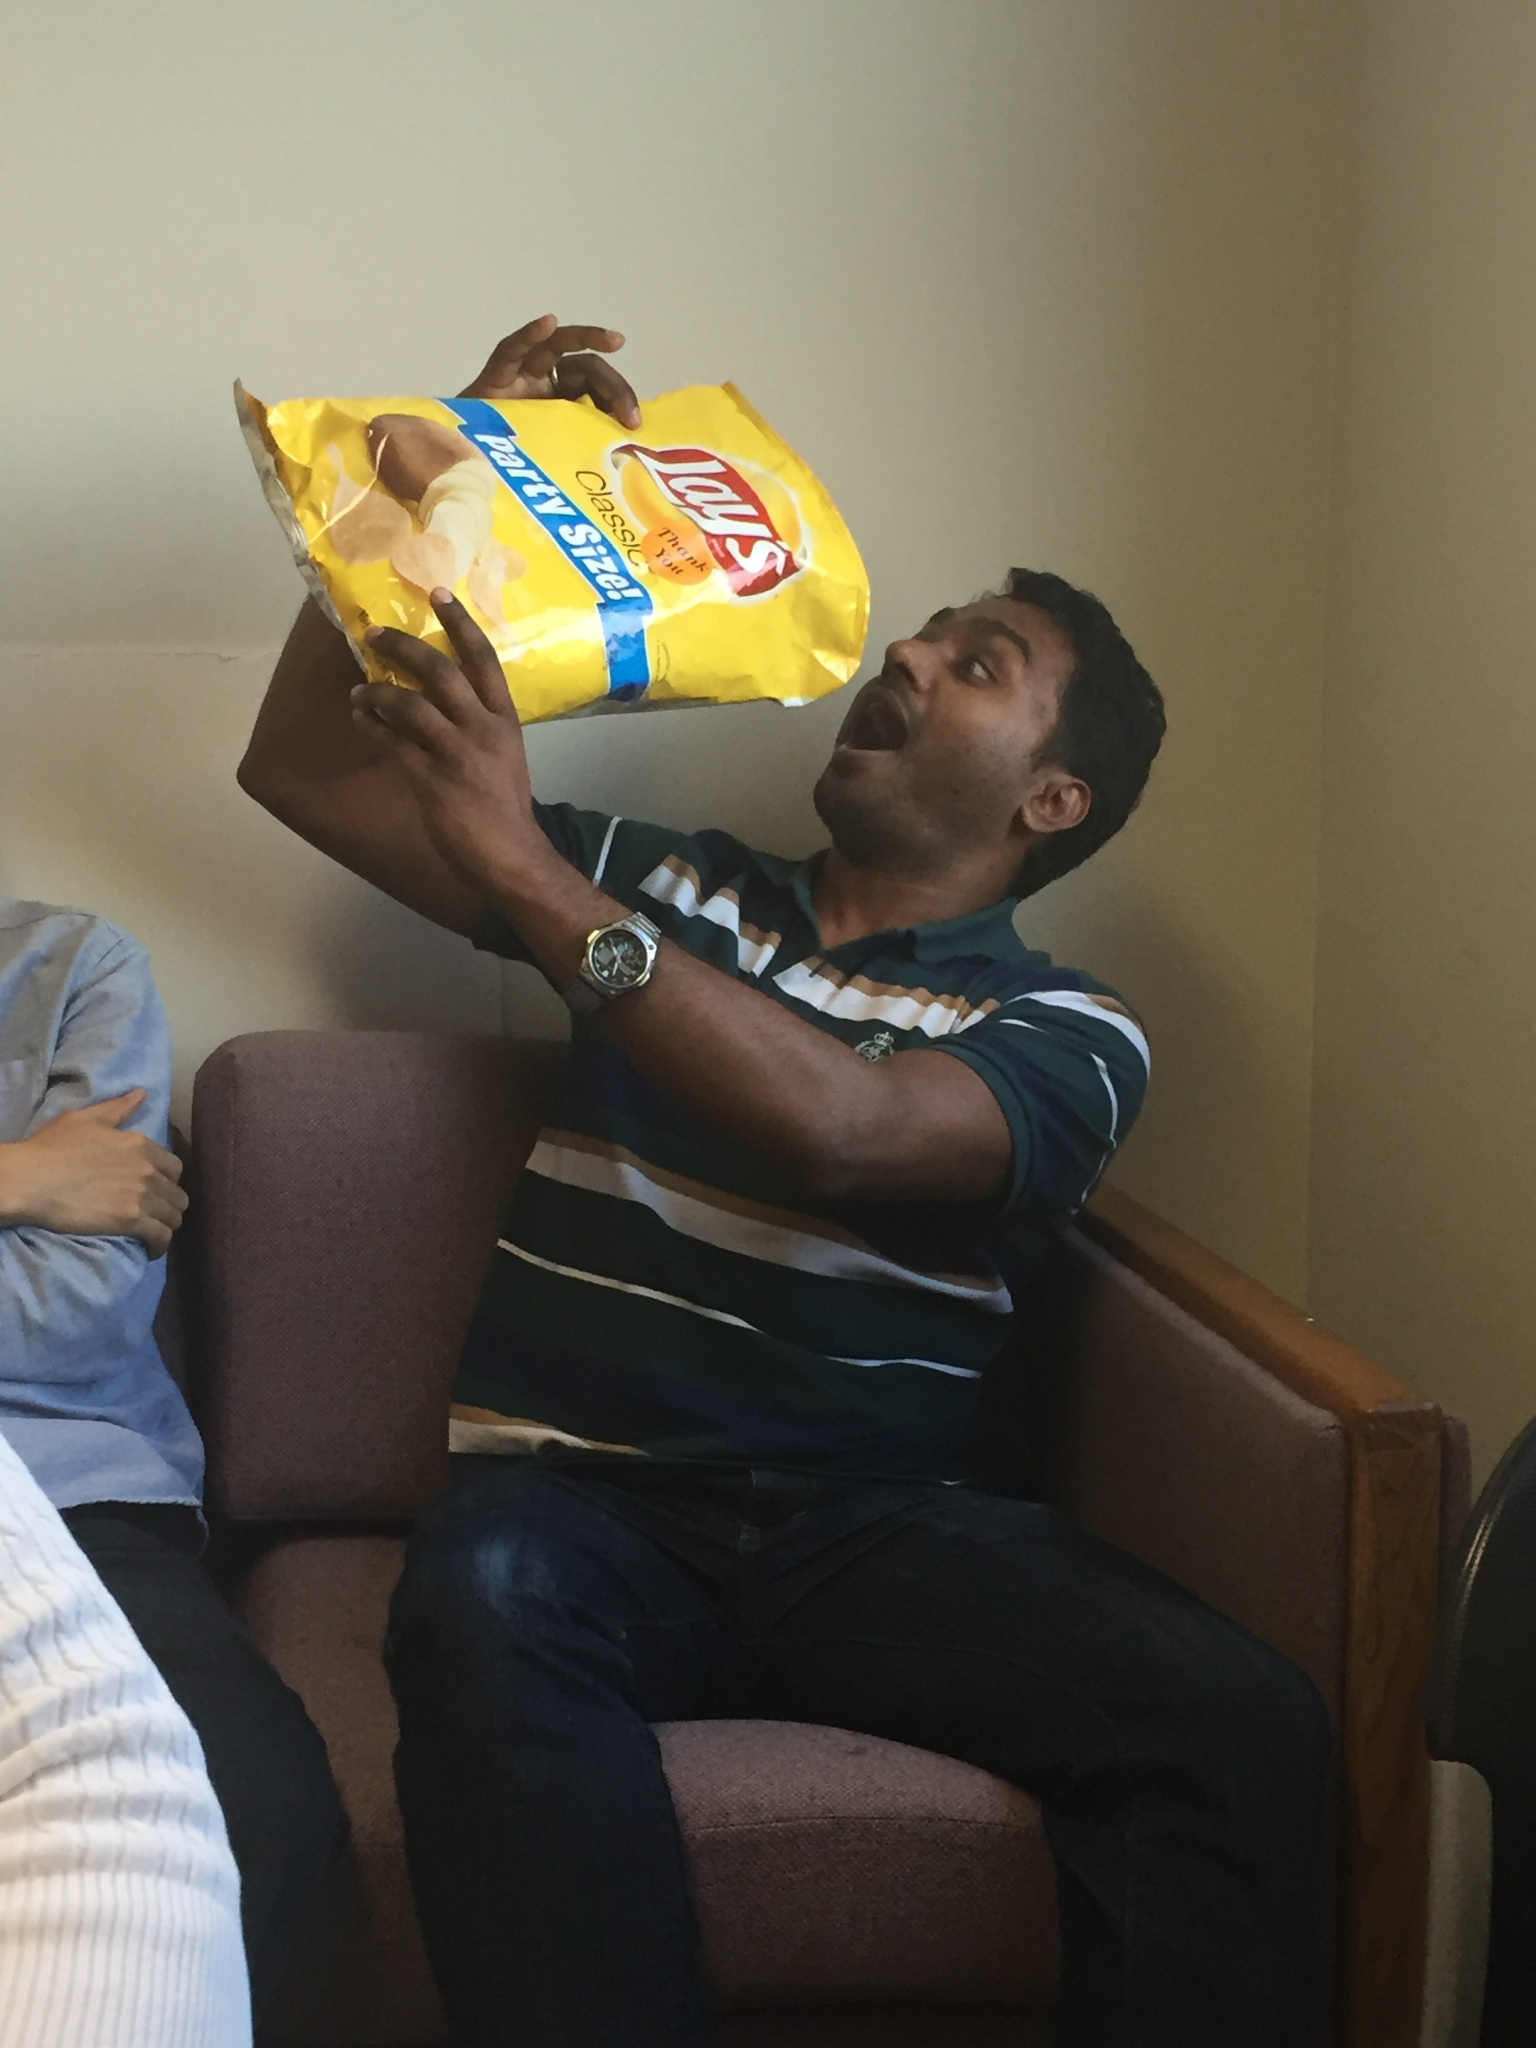 Amit can't get enough chips